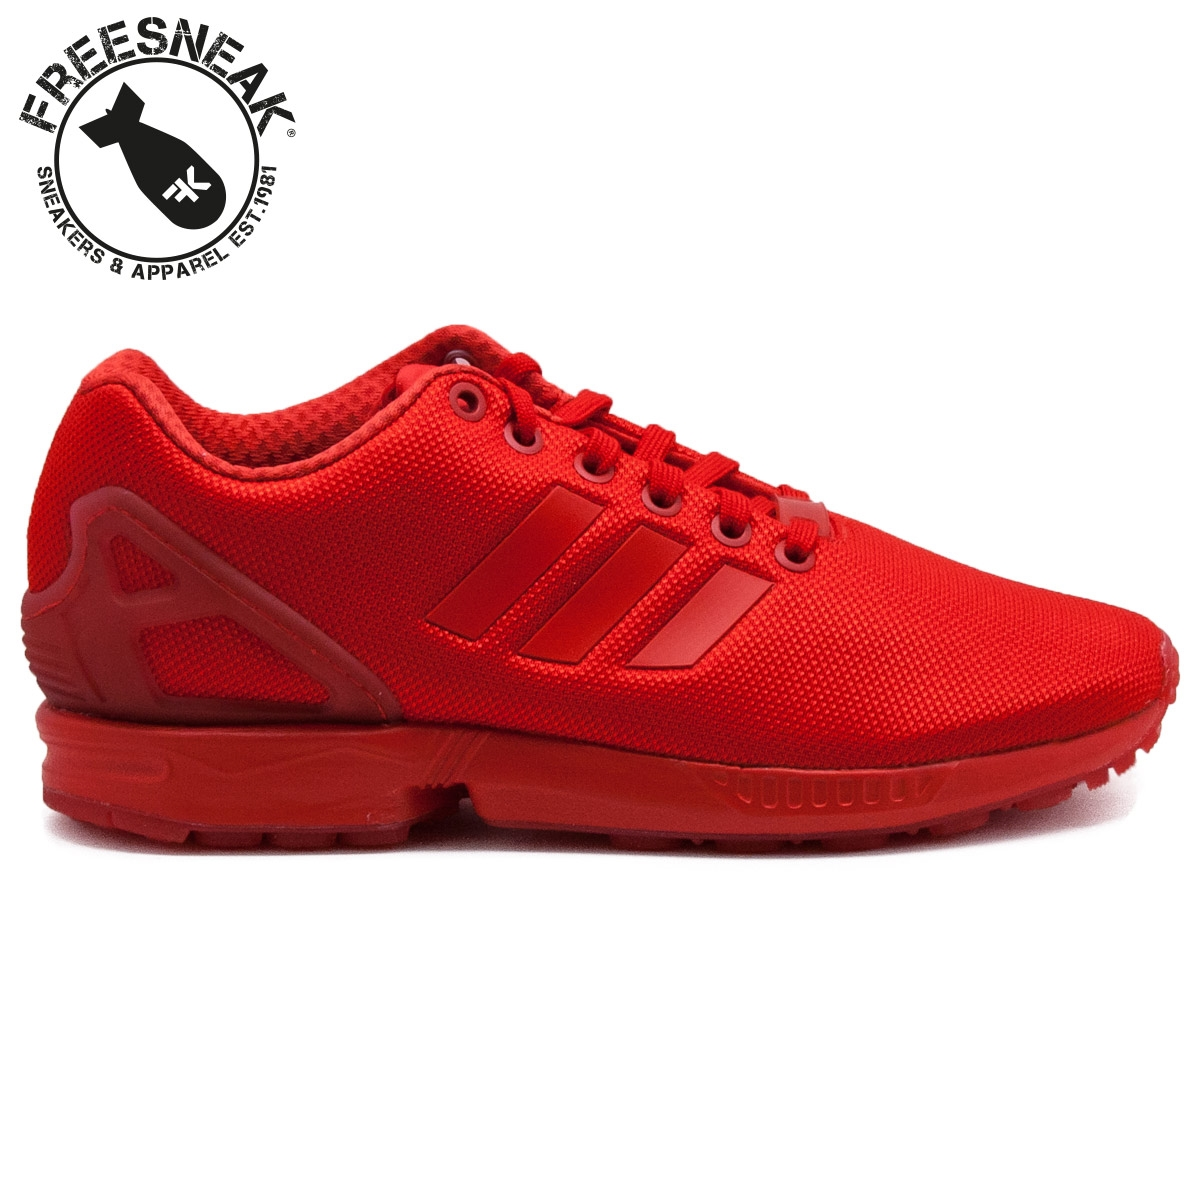 official photos 1e14a 2bcce Adidas Zx Flux Monochrome Red AQ3098